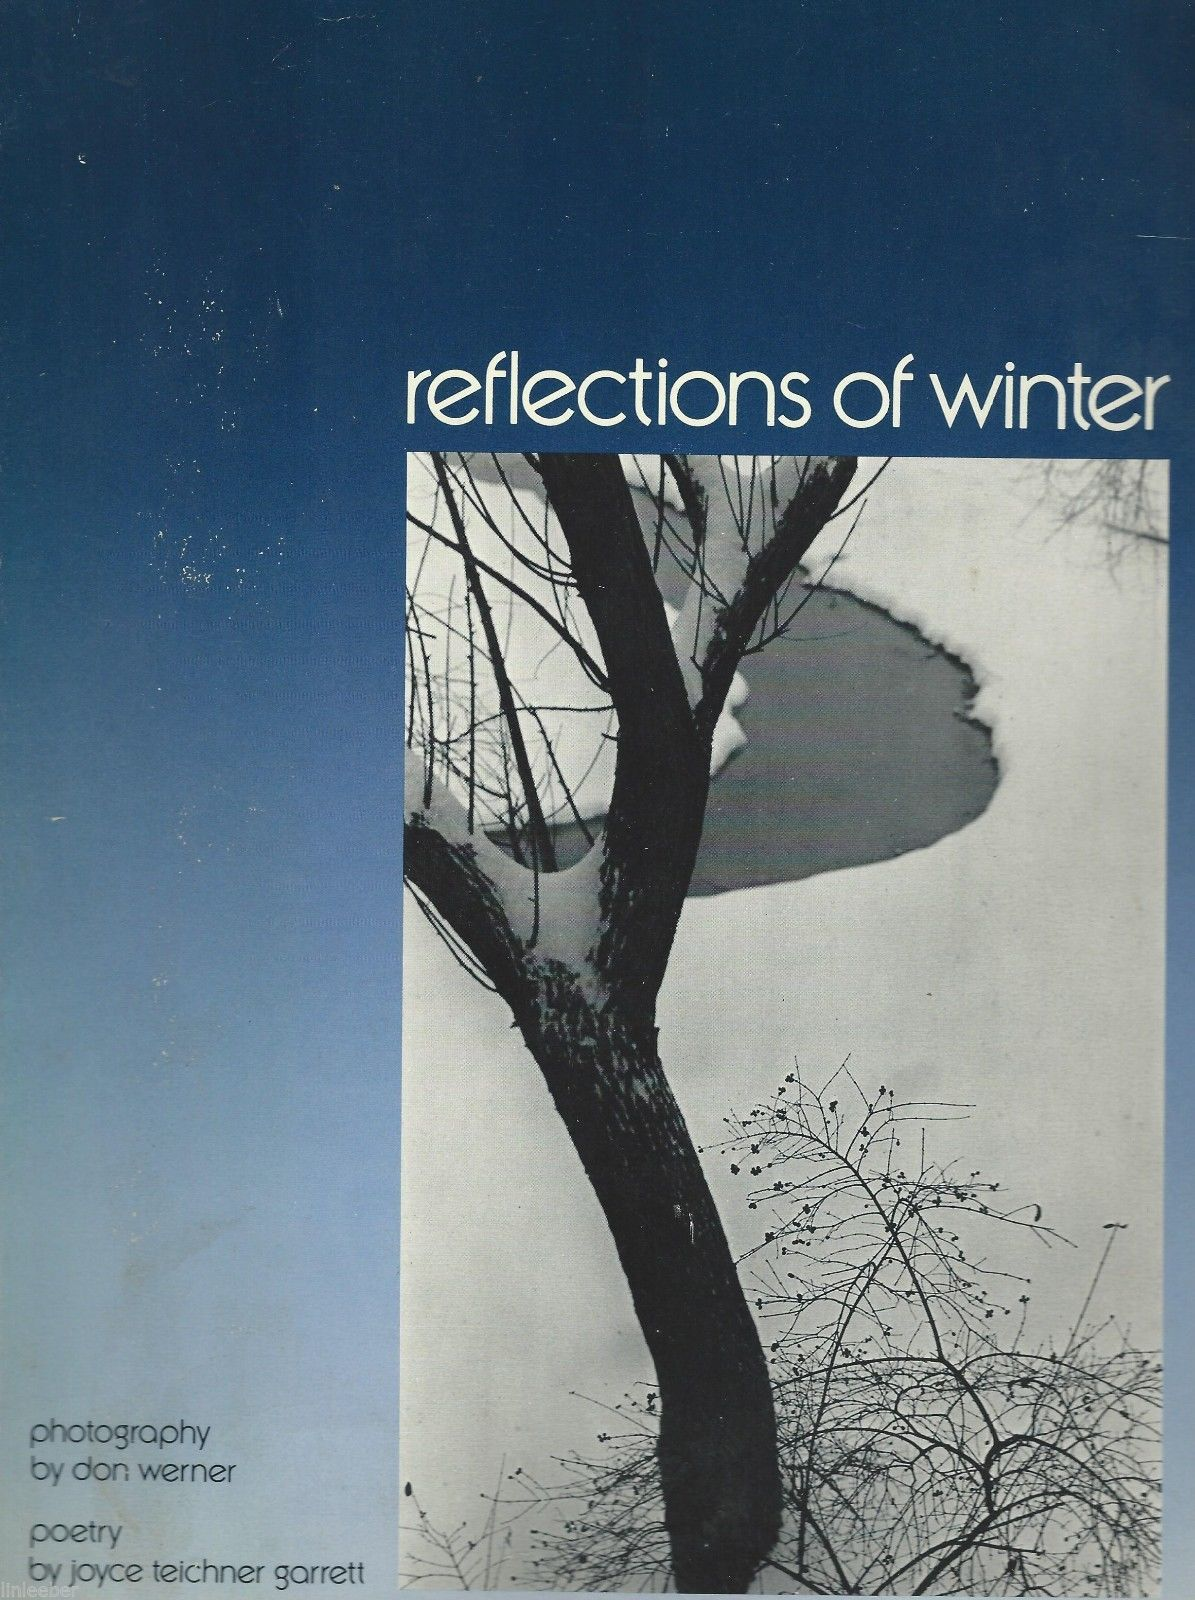 Reflections of Winter by Don Werner (Photography); Joyce T.Garrett (Poetry);1978